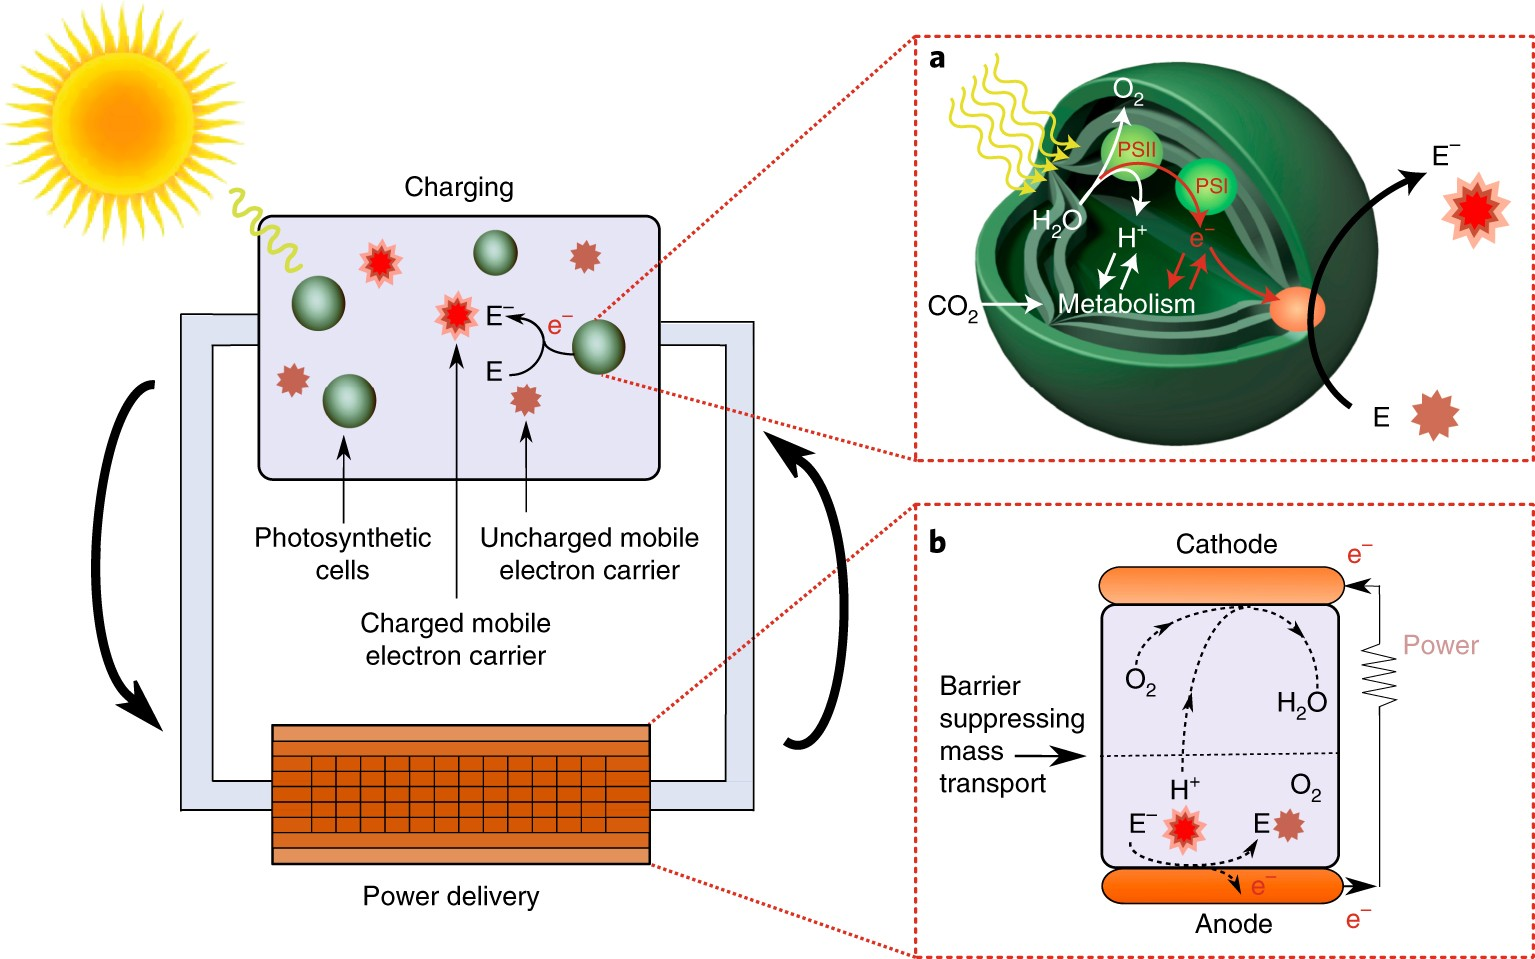 Enhancing Power Density Of Biophotovoltaics By Decoupling Storage Wiring Separate Circuit To Future Room And Delivery Nature Energy